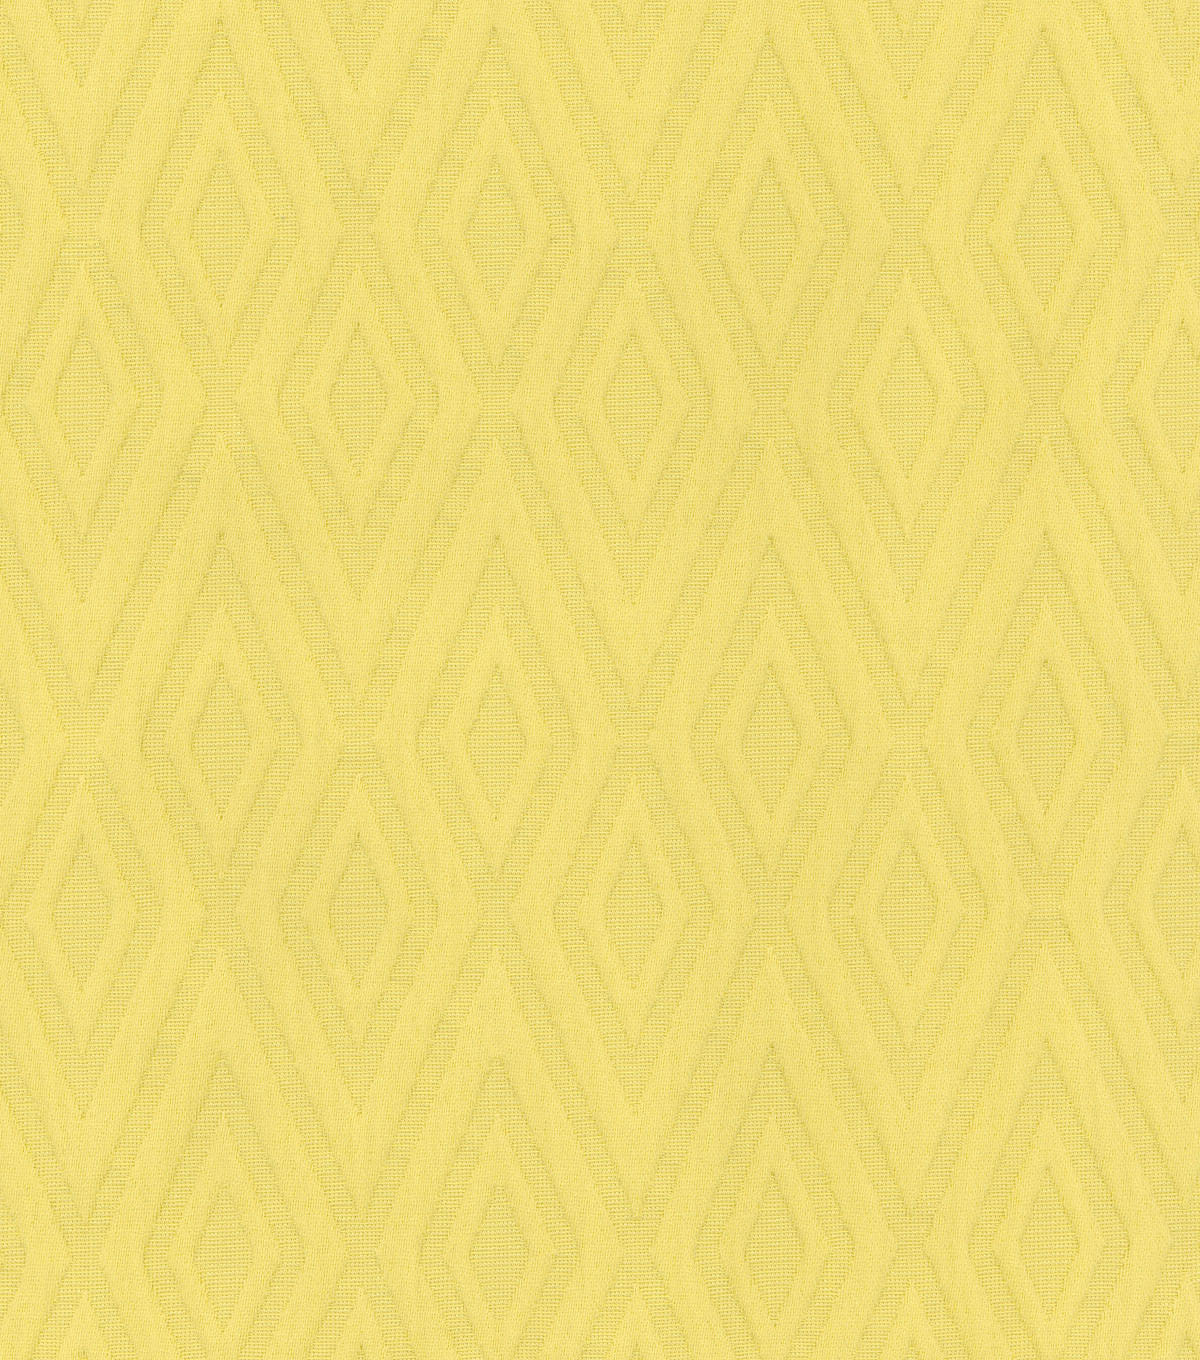 Waverly Lightweight Decor Fabric 57\u0022-Fantastical/Lemon